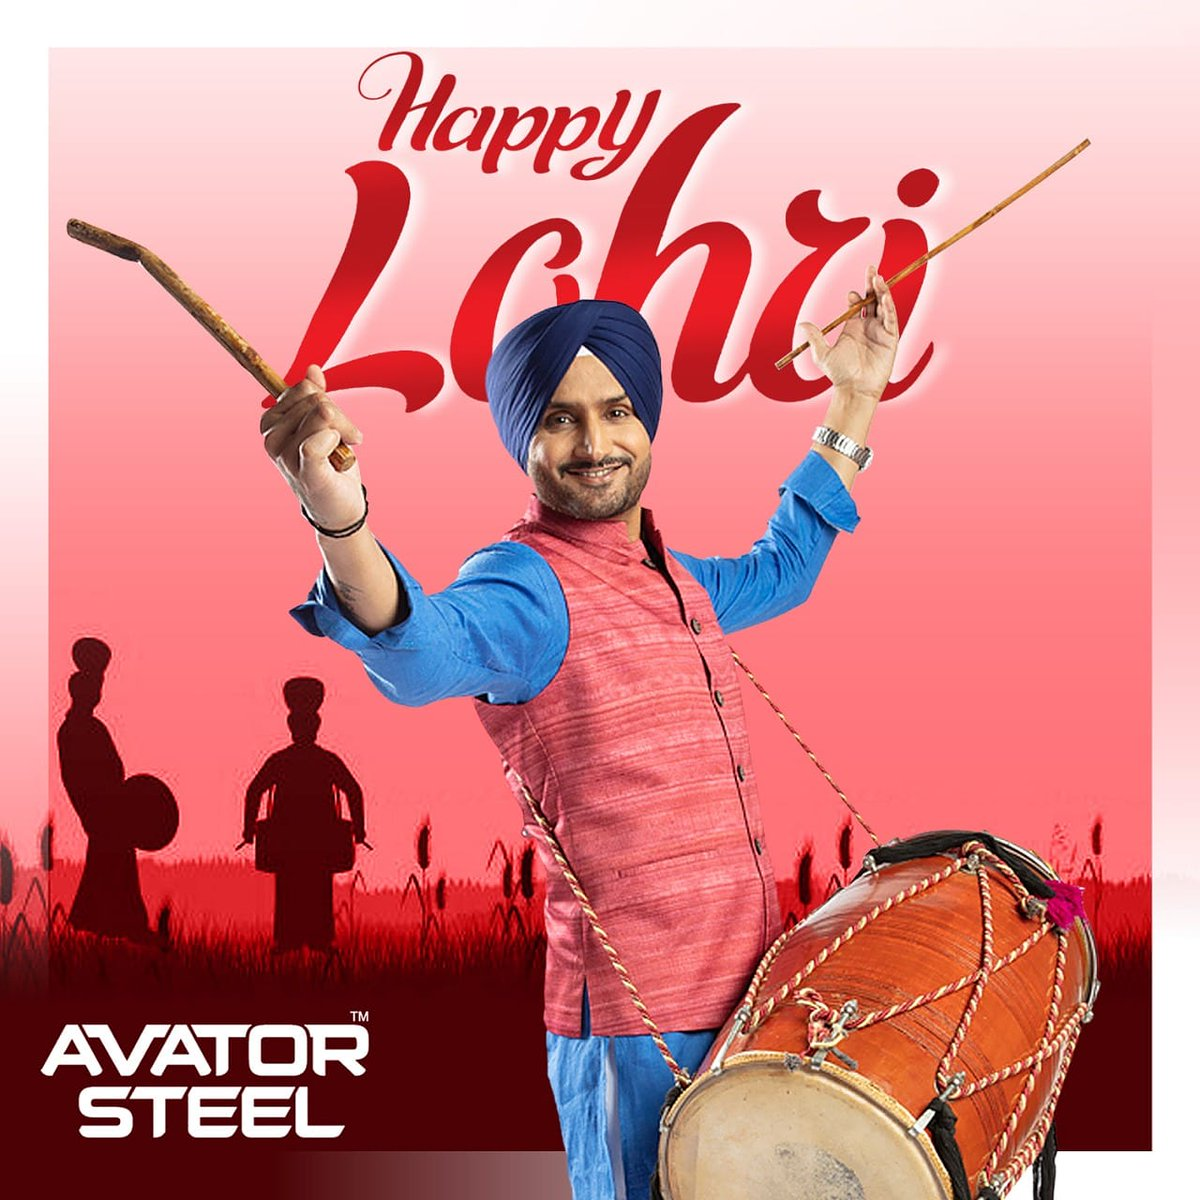 May this Lohri bring lots of laughter, happiness, prosperity, and success to your home. Happy Lohri from the #AvatorSteel family!  #HarbhajanSingh #Lohri  @harbhajan_singh